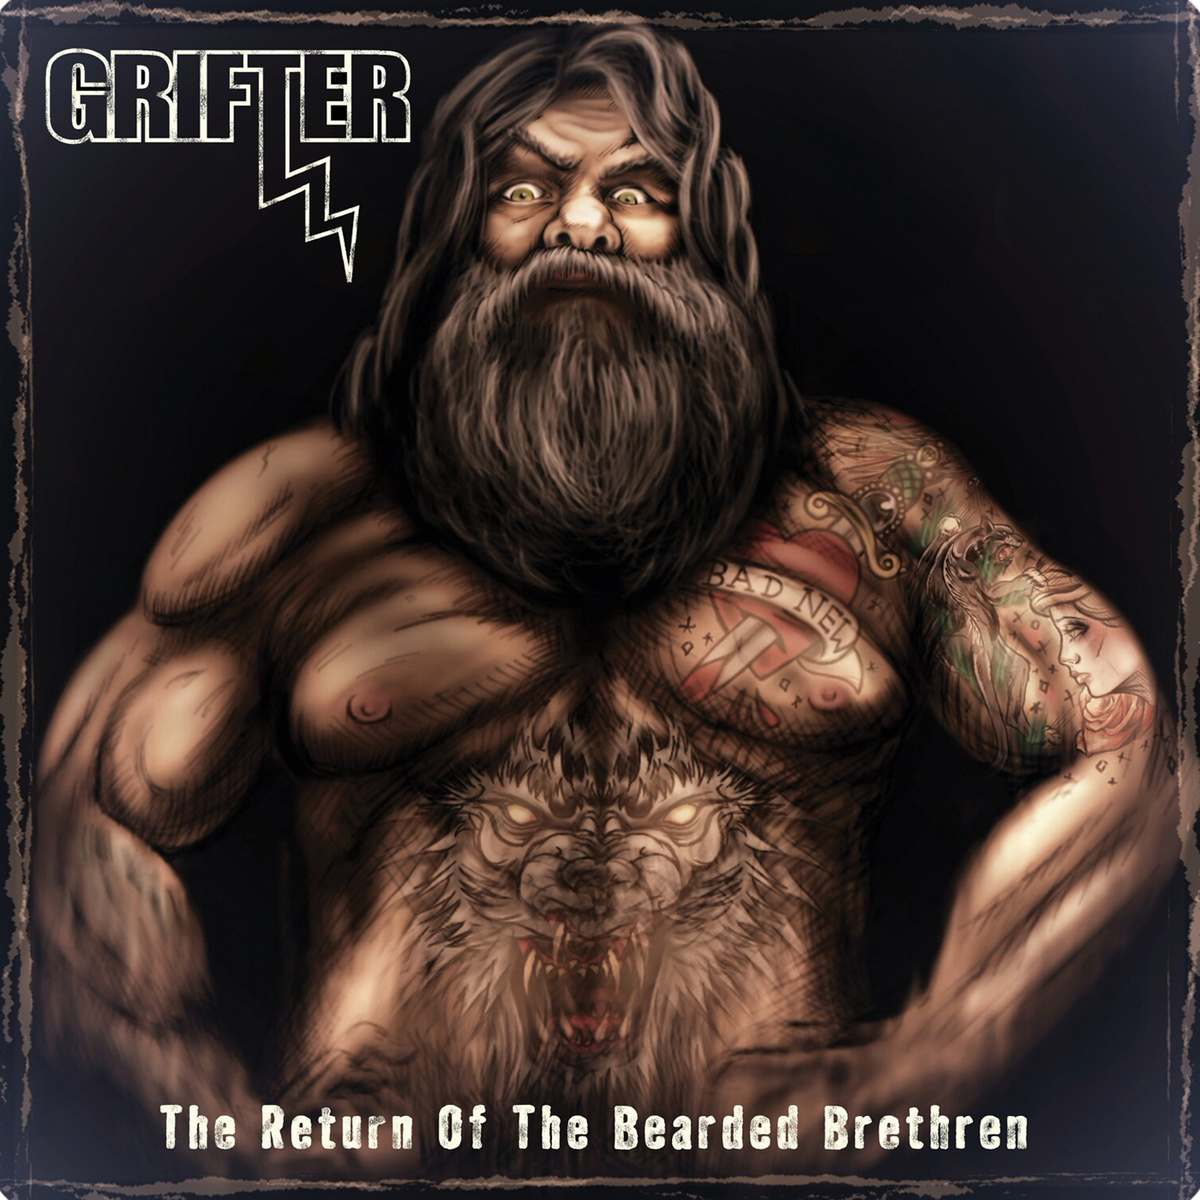 Grifter - The Return Of Bearded Brethren